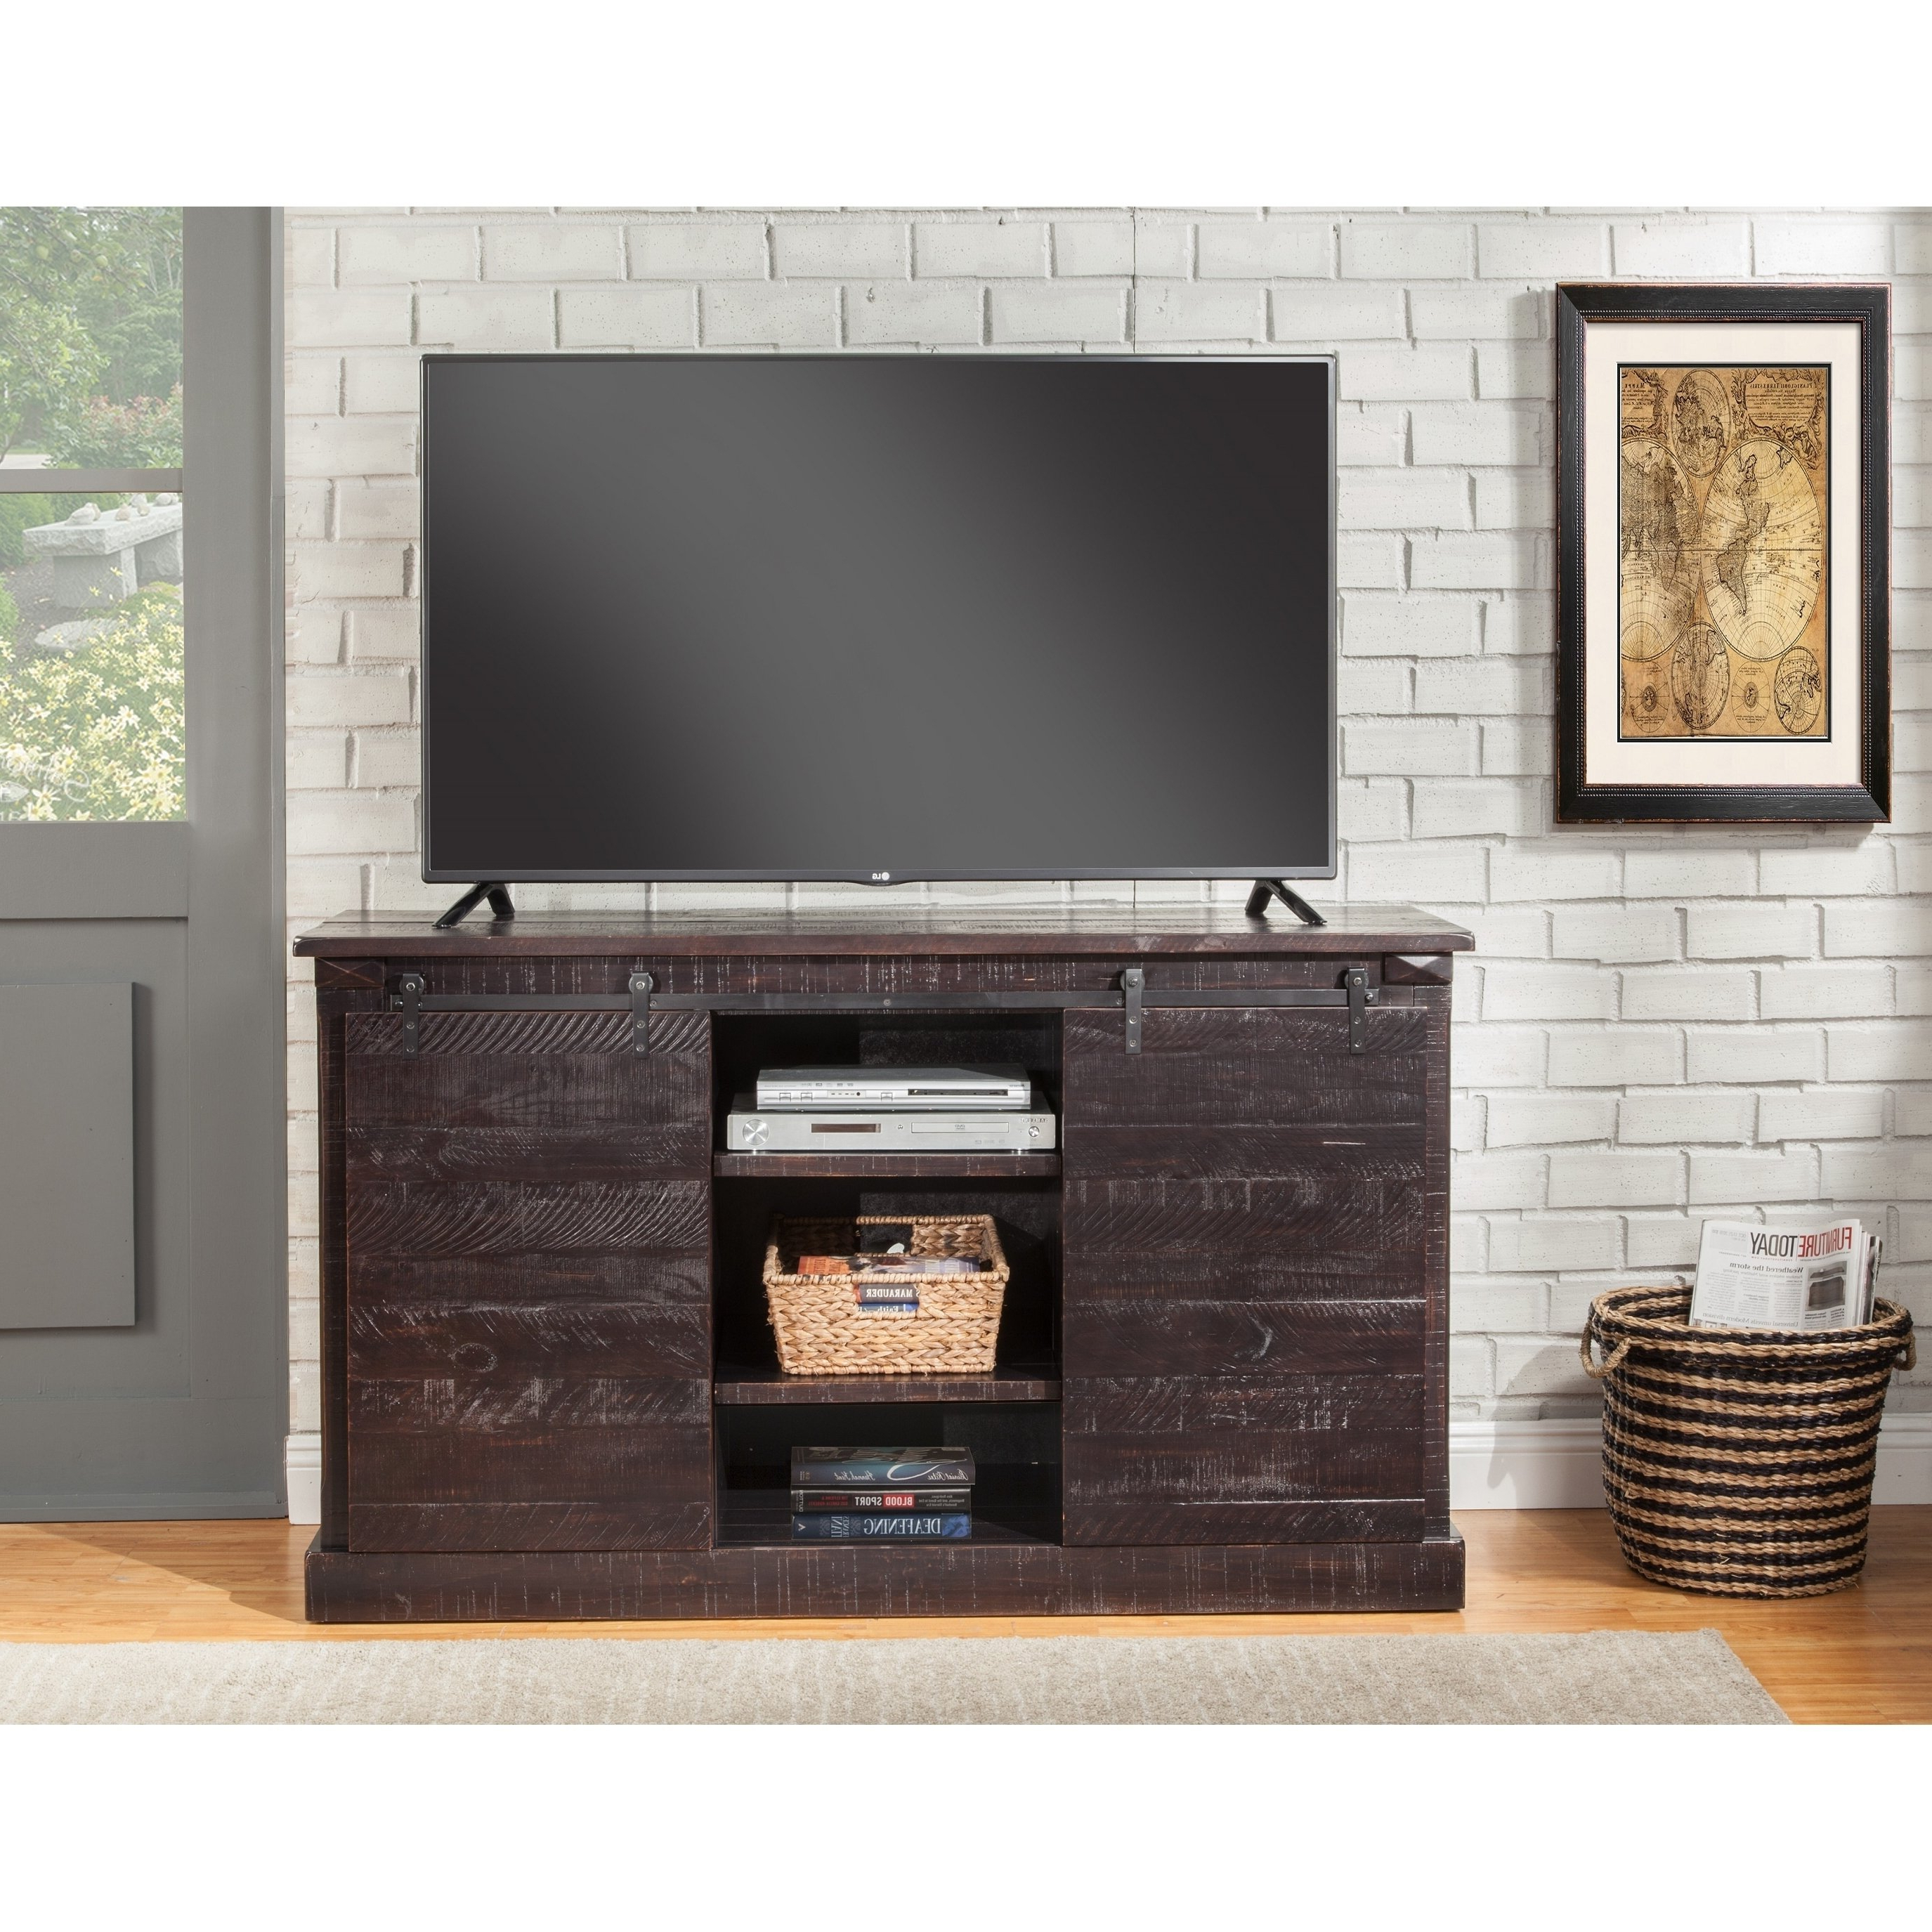 Buy Black, Rustic Tv Stands & Entertainment Centers Online At Pertaining To Wakefield 97 Inch Tv Stands (View 9 of 20)